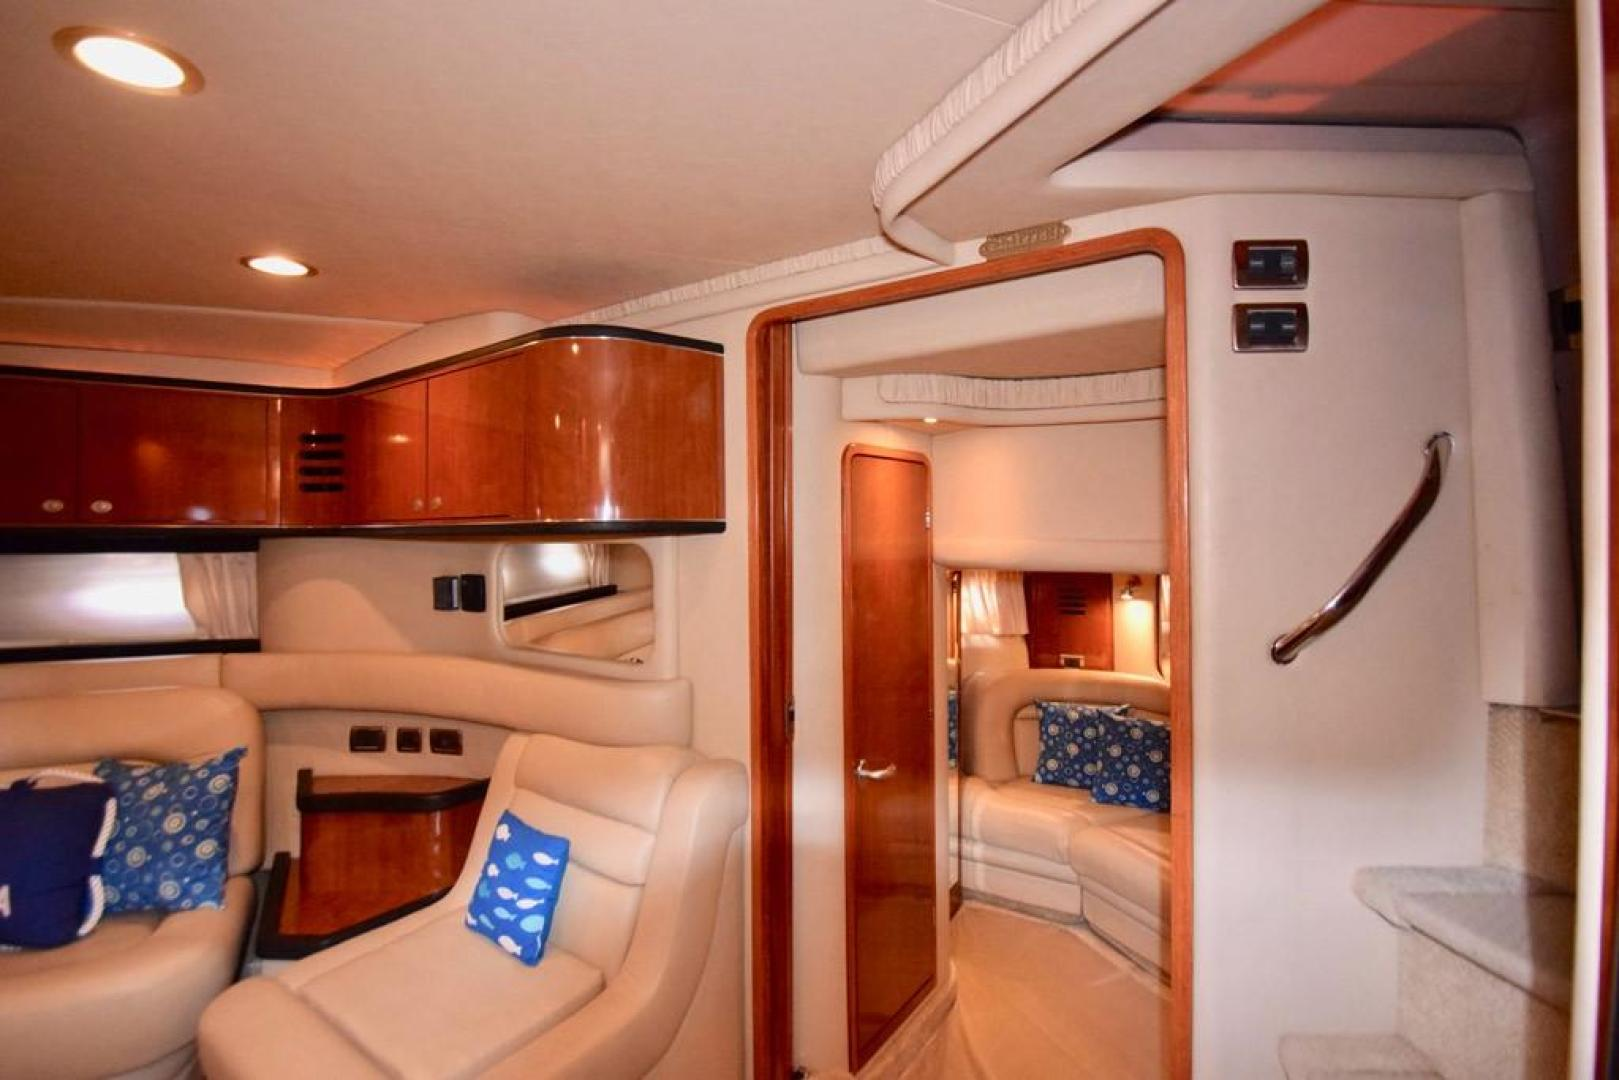 Sea Ray-Sundancer 2004-Bubba The Final Version? Dania Beach-Florida-United States-From Galley into Mid Stateroom-368965 | Thumbnail